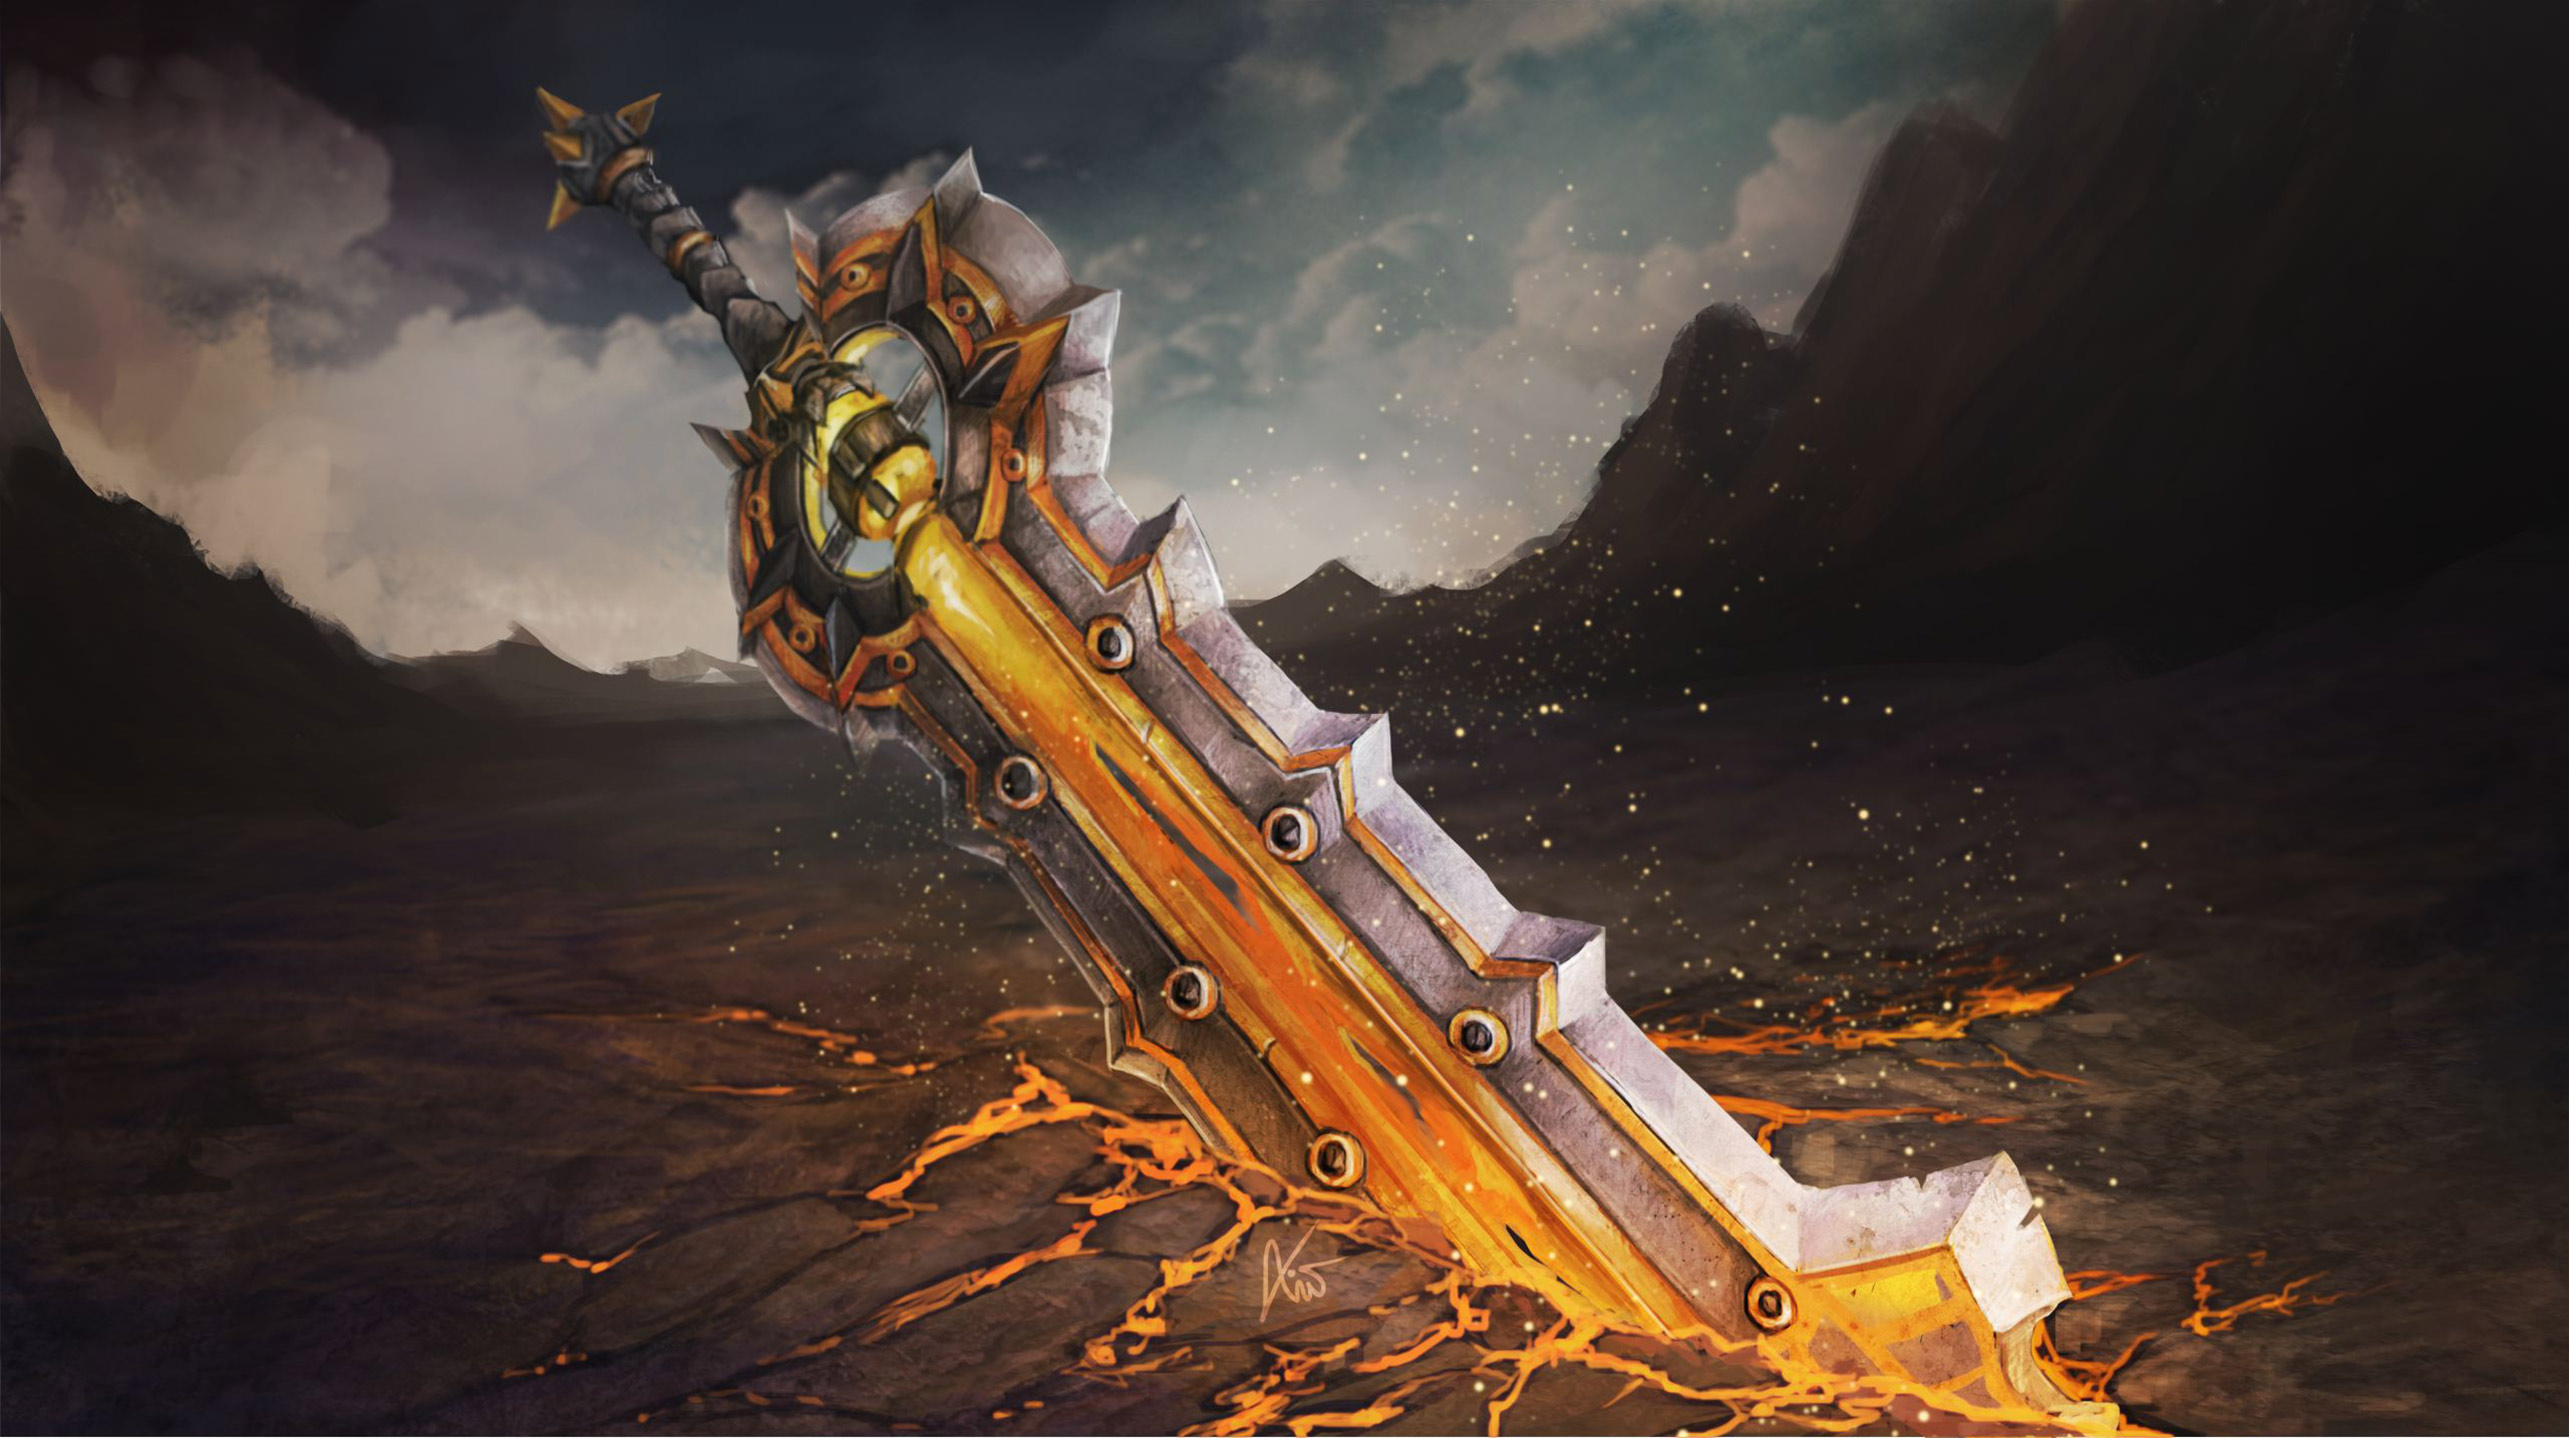 Pictures of Wow Warrior Wallpaper - #rock-cafe